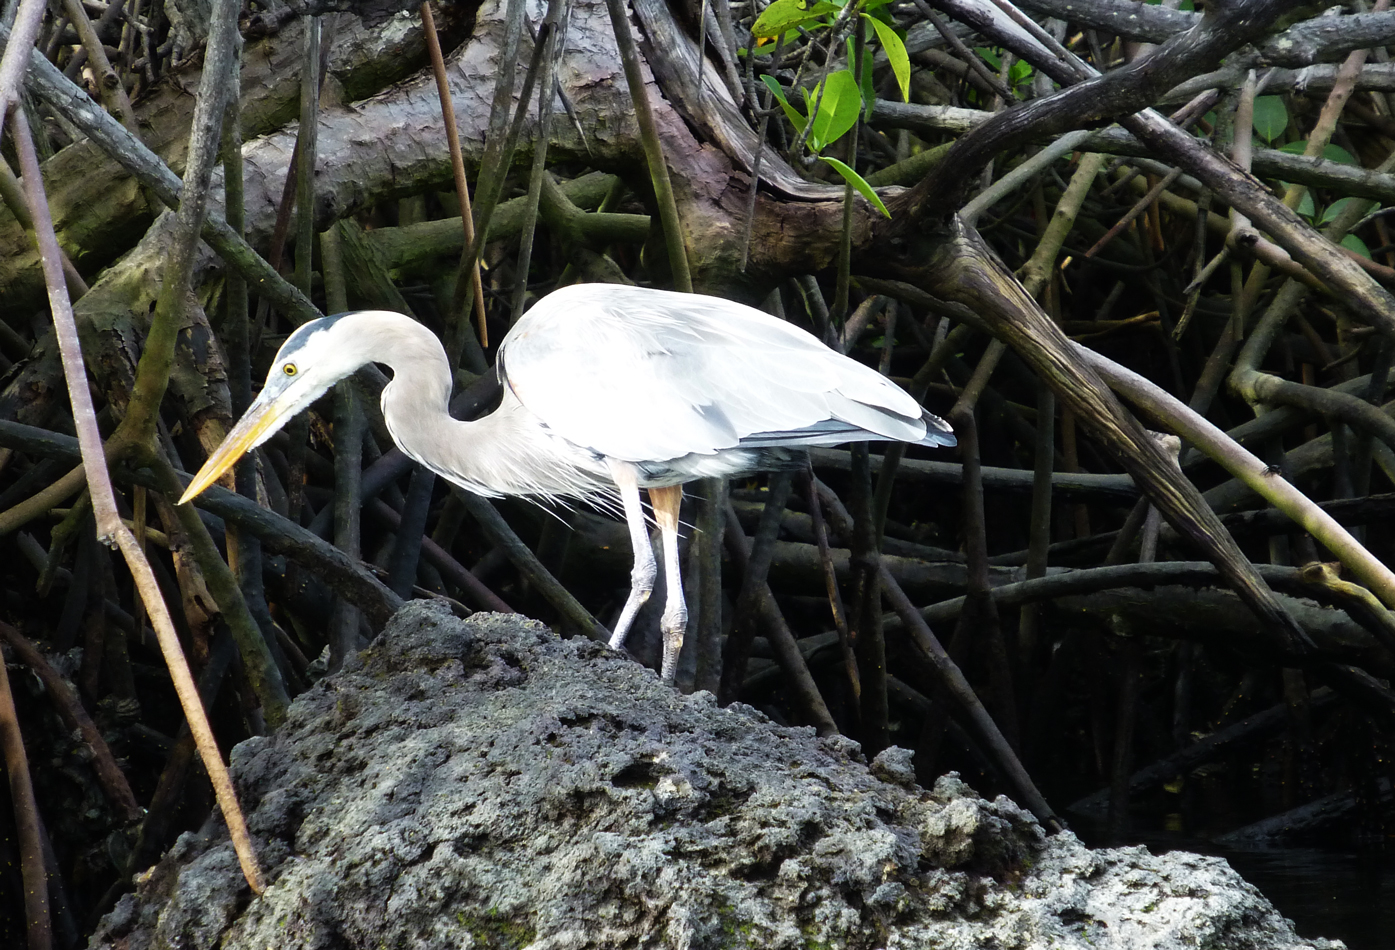 A Great Blue Heron in the mangroves